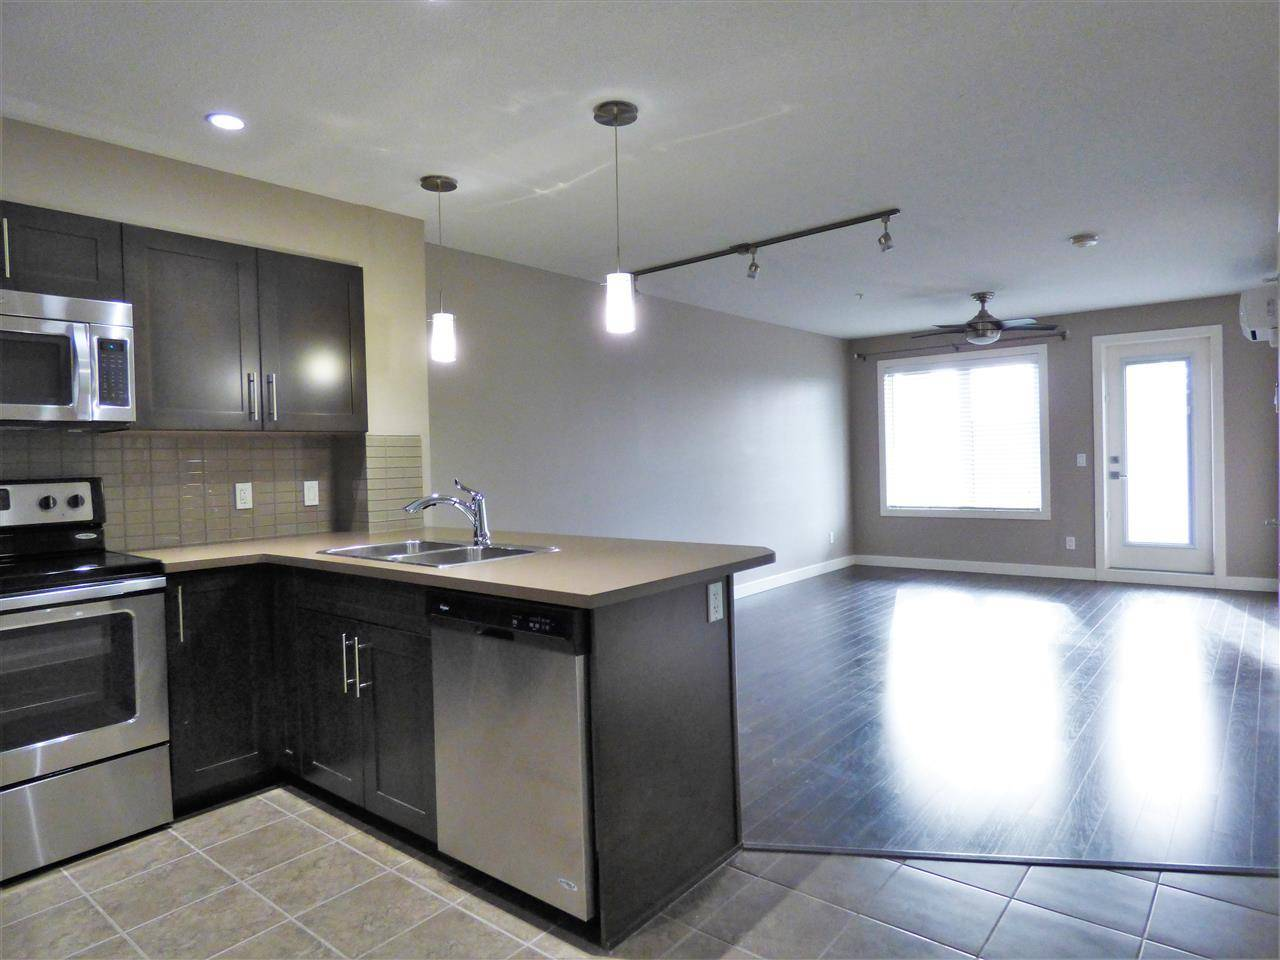 Condo for sale at 1031 173 St Sw Unit 112 Edmonton Alberta - MLS: E4177335